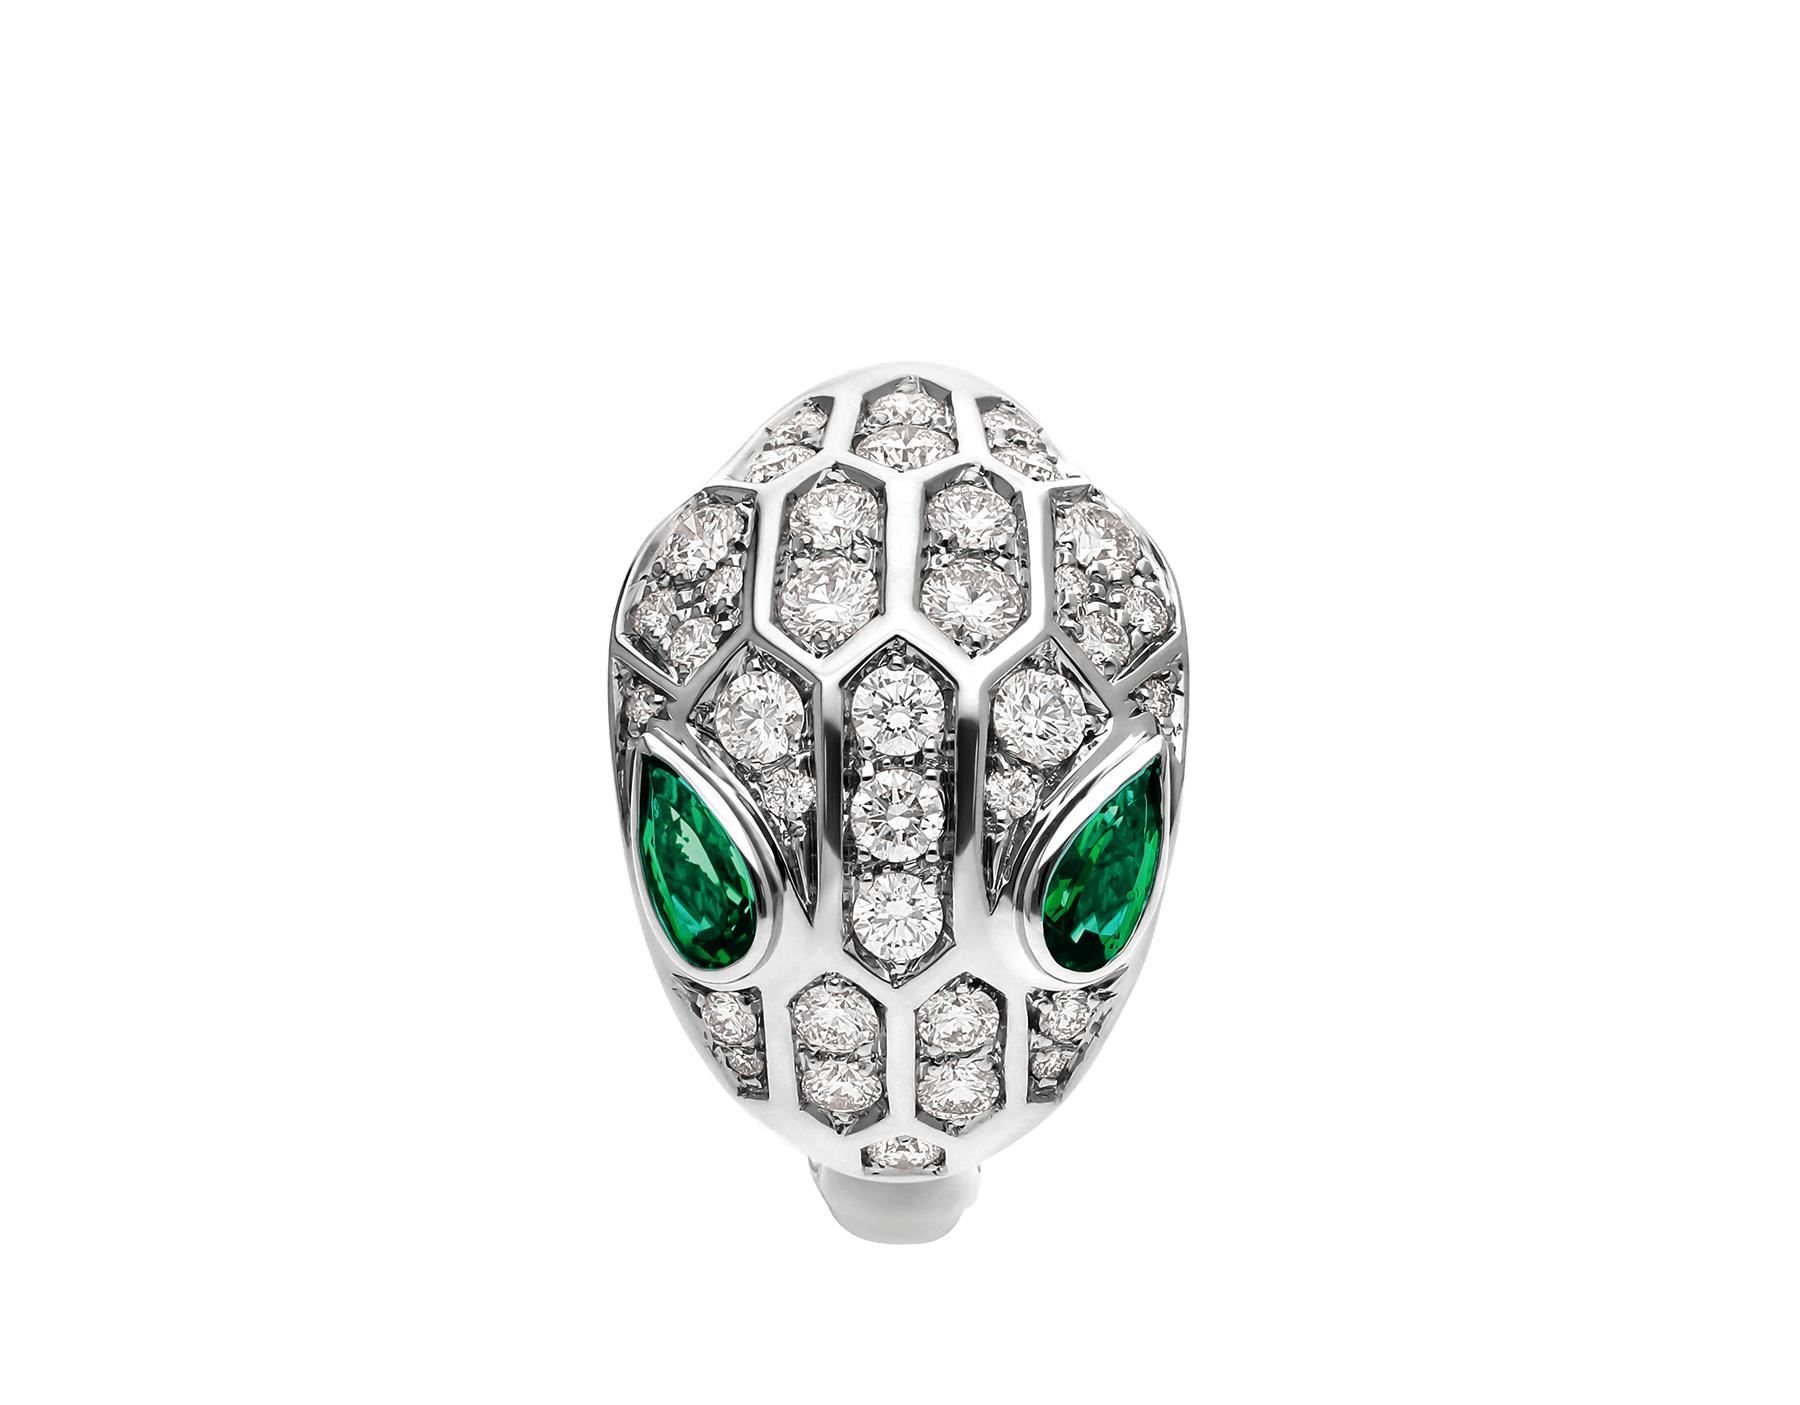 Serpenti ring in 18 kt white gold set with two emerald eyes (0.30 ct) and pavé diamonds (0.76 ct). AN858255 image 2